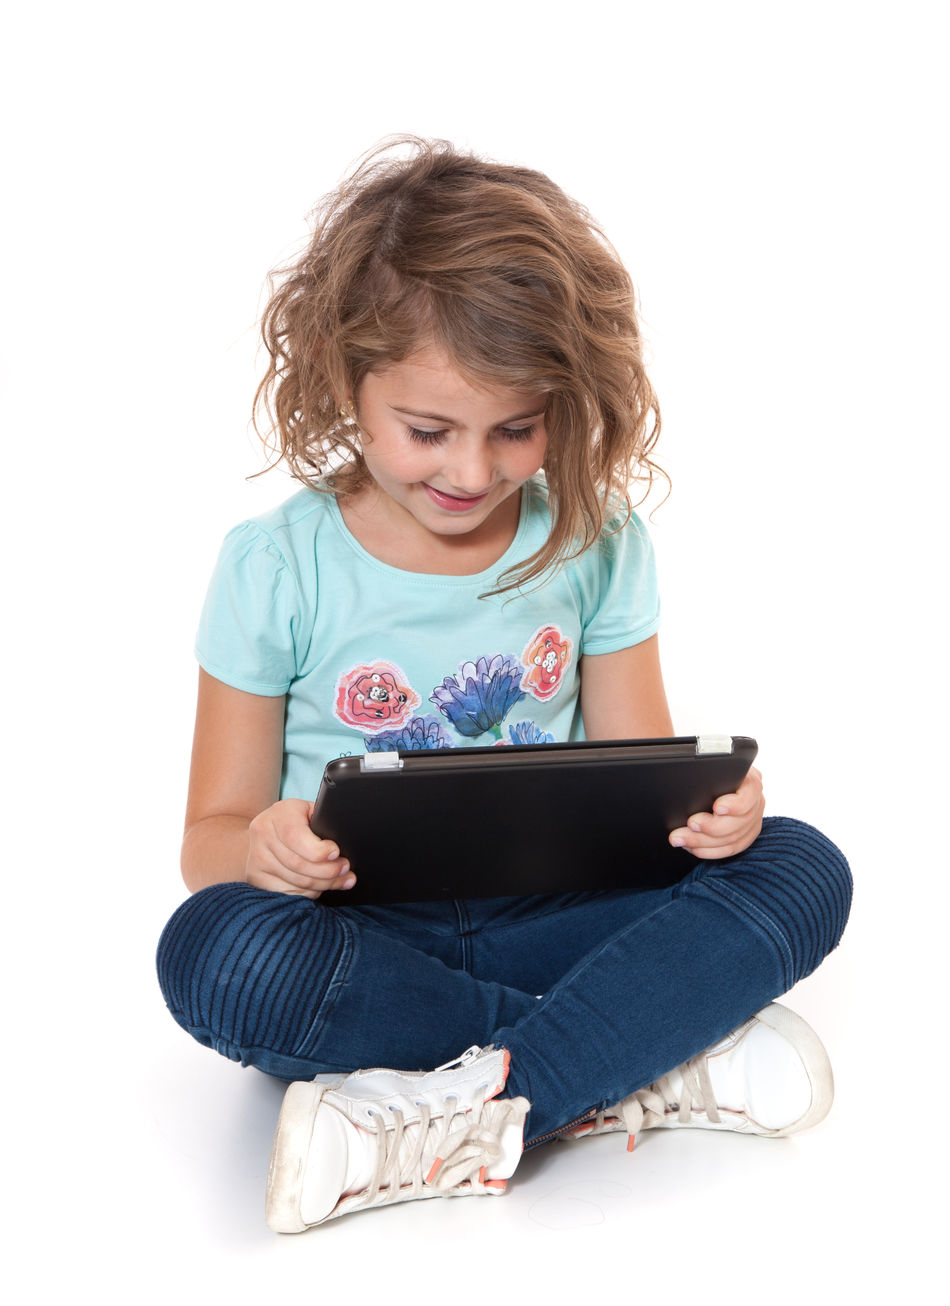 Young girl using tablet device. All on white background. Child Childhood Curly Hair Full Length Girl Girlhood Isolated On White Isolated White Background Kid One Person Sitting Studio Shot Tablet Computer Tablet Device Tablet Pc White Background Young Girl Mobile Conversations